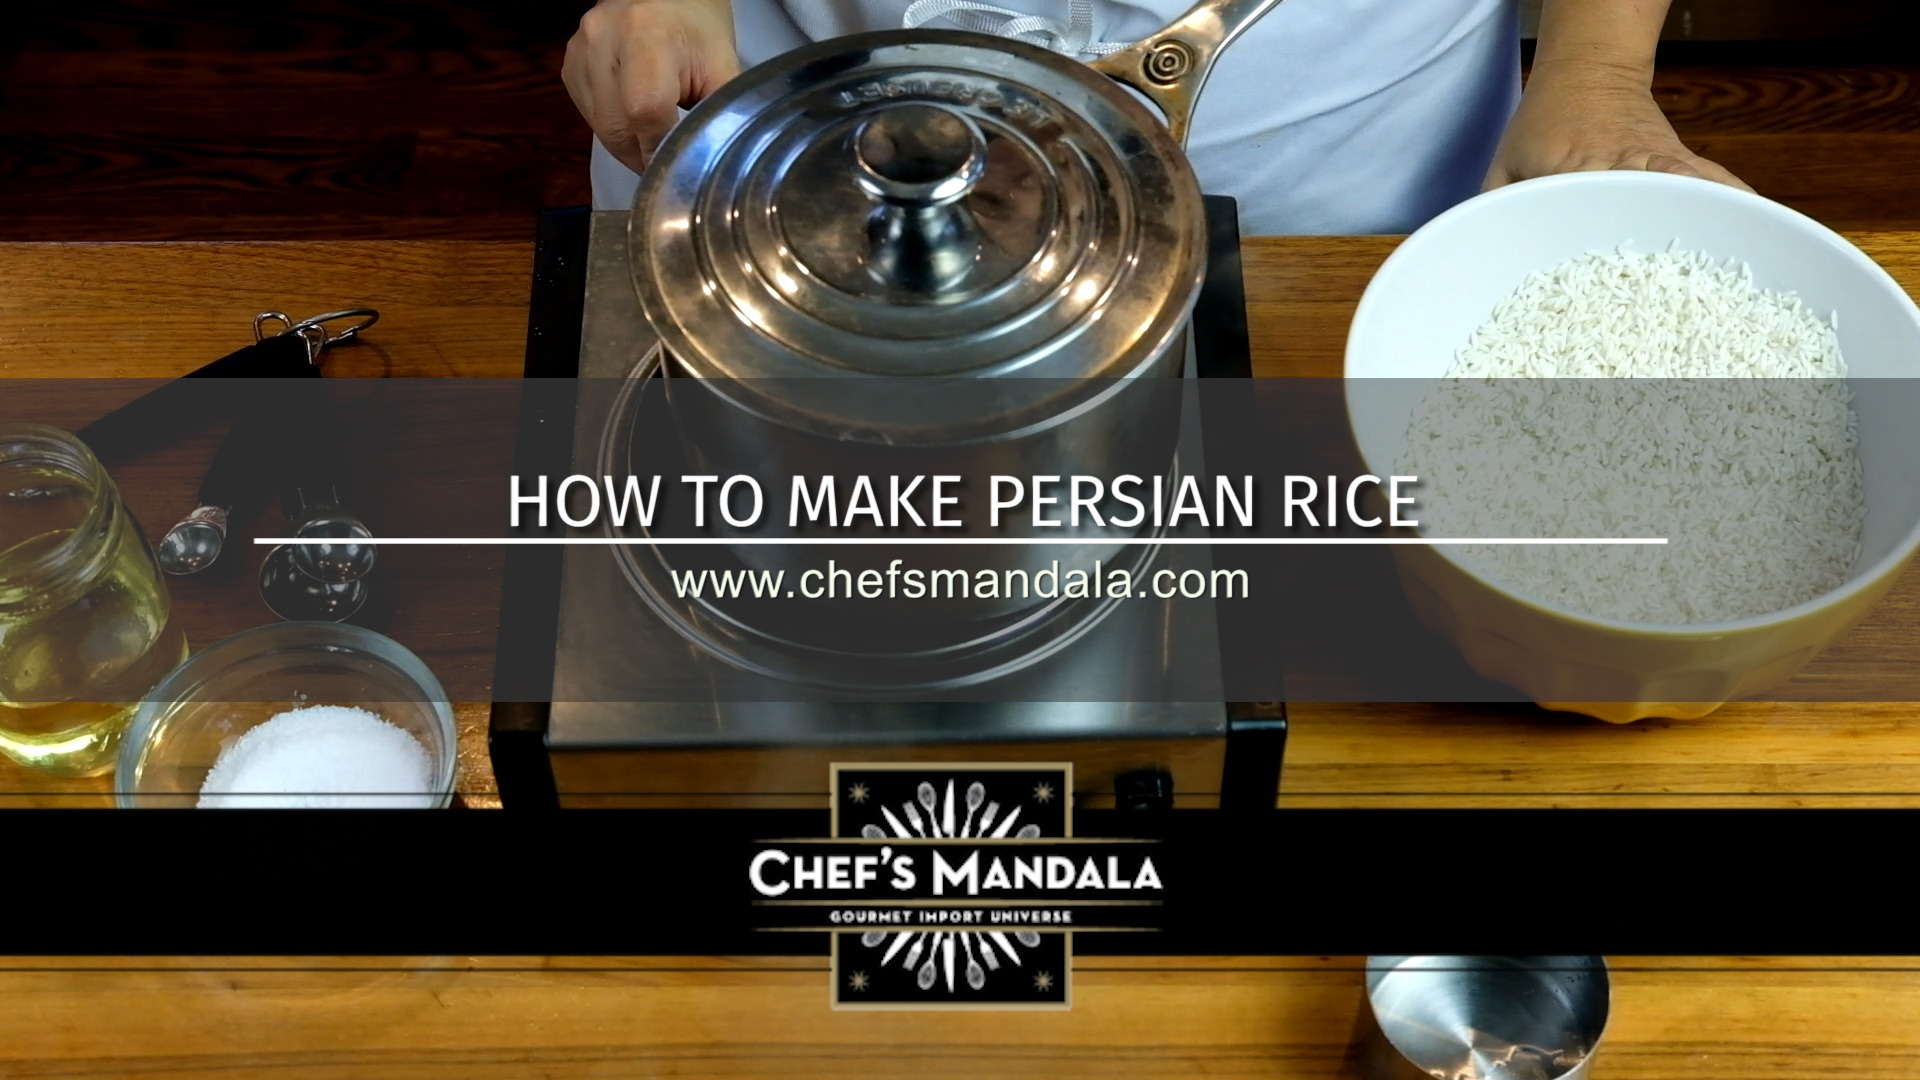 HOW TO MAKE PERSIAN RICE